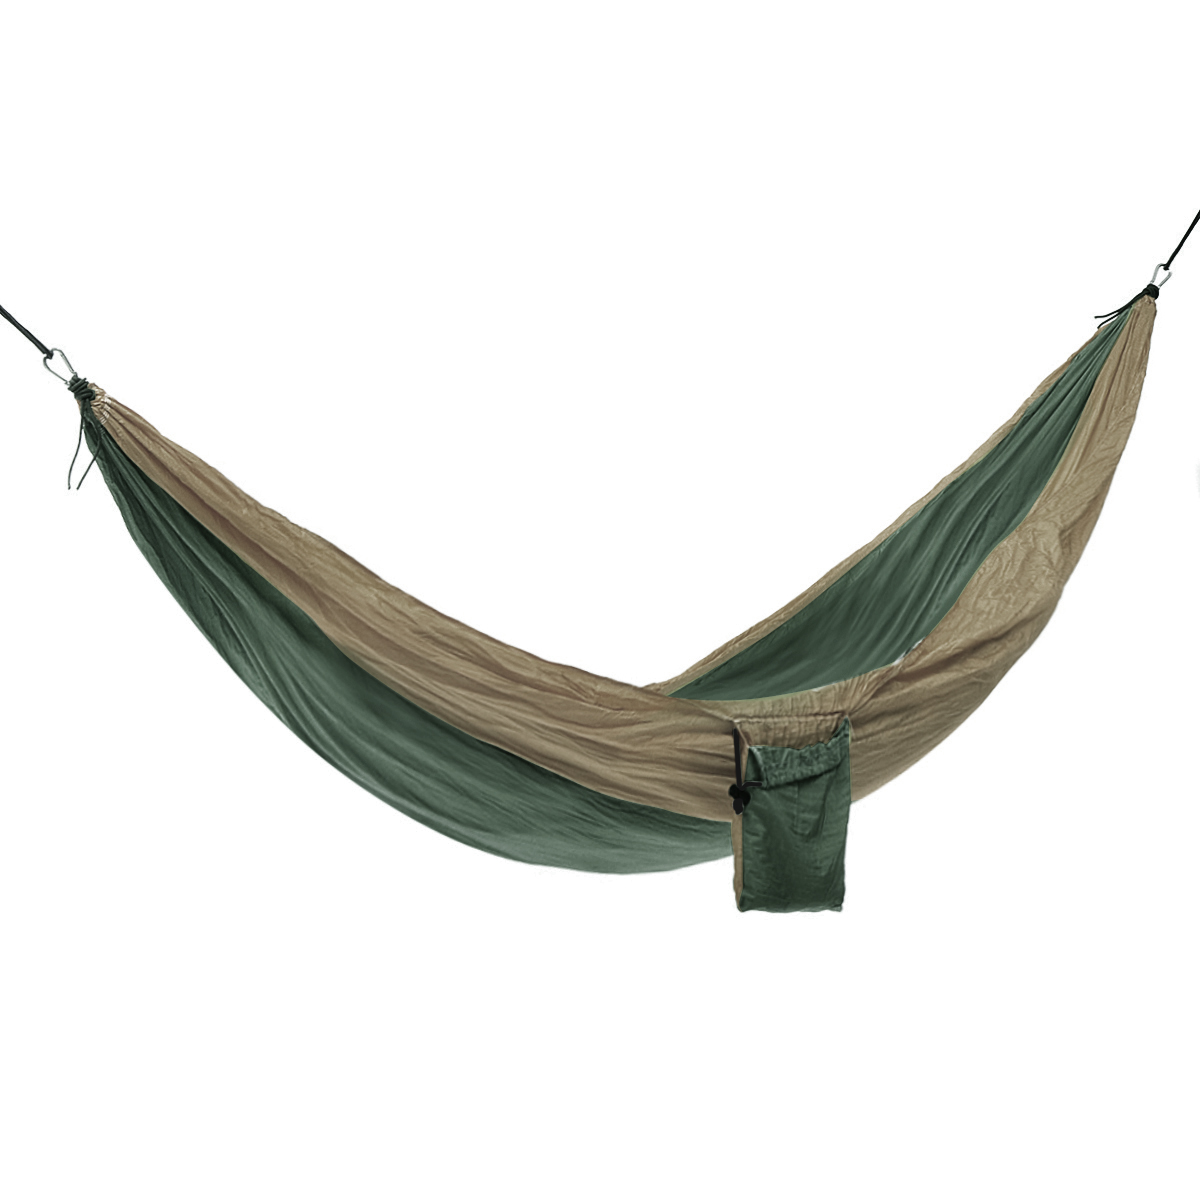 Double Camping Parachute Hammocks Survival Garden Outdoor Furniture Leisure Sleeping Bed Travel Hammocks With 2 Straps 2 Carabin